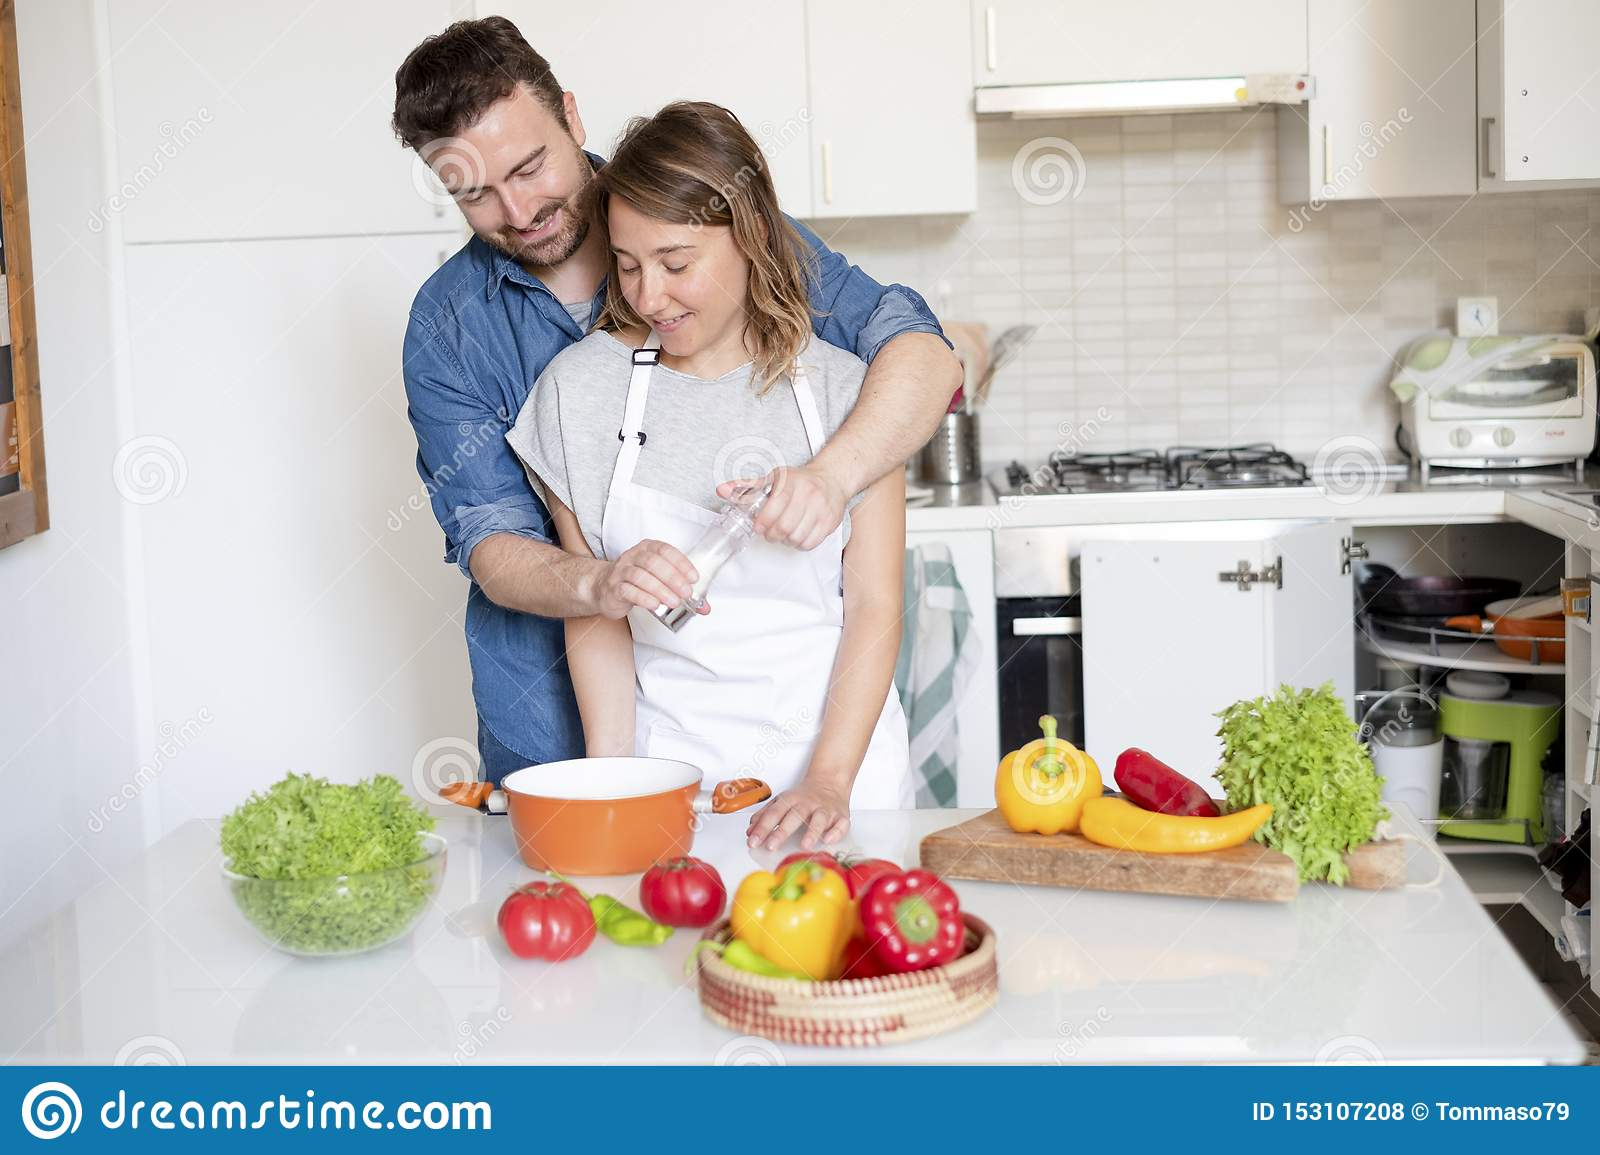 Happy couple in home kitchen cooking together vegetables